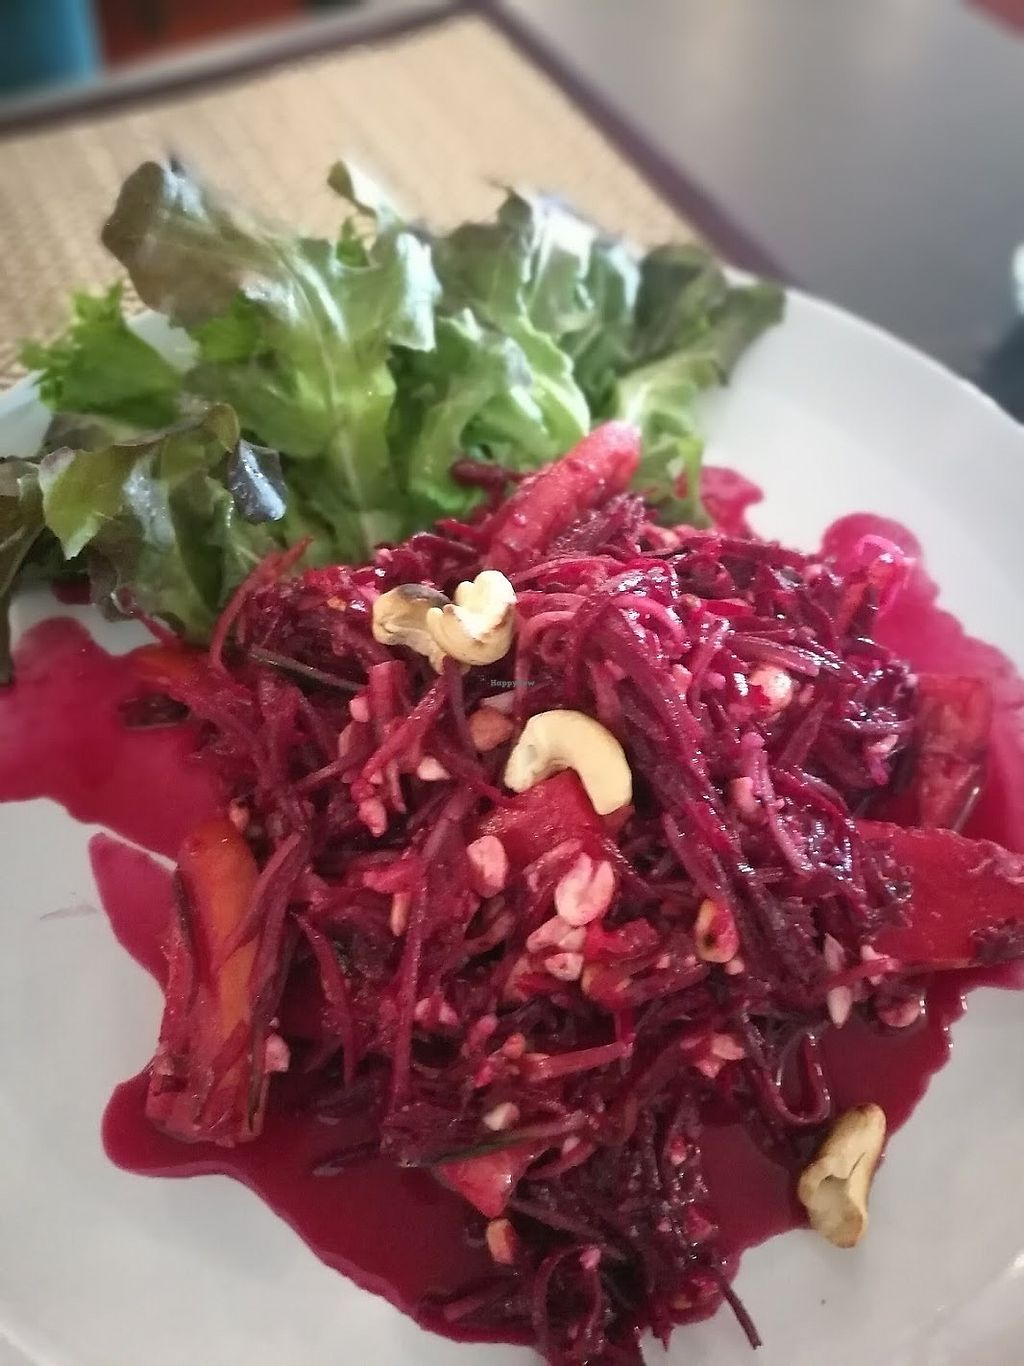 "Photo of Goodsouls Kitchen  by <a href=""/members/profile/shortolyn"">shortolyn</a> <br/>Spicy Beetroot and Carrot Salad <br/> December 29, 2017  - <a href='/contact/abuse/image/107183/340363'>Report</a>"